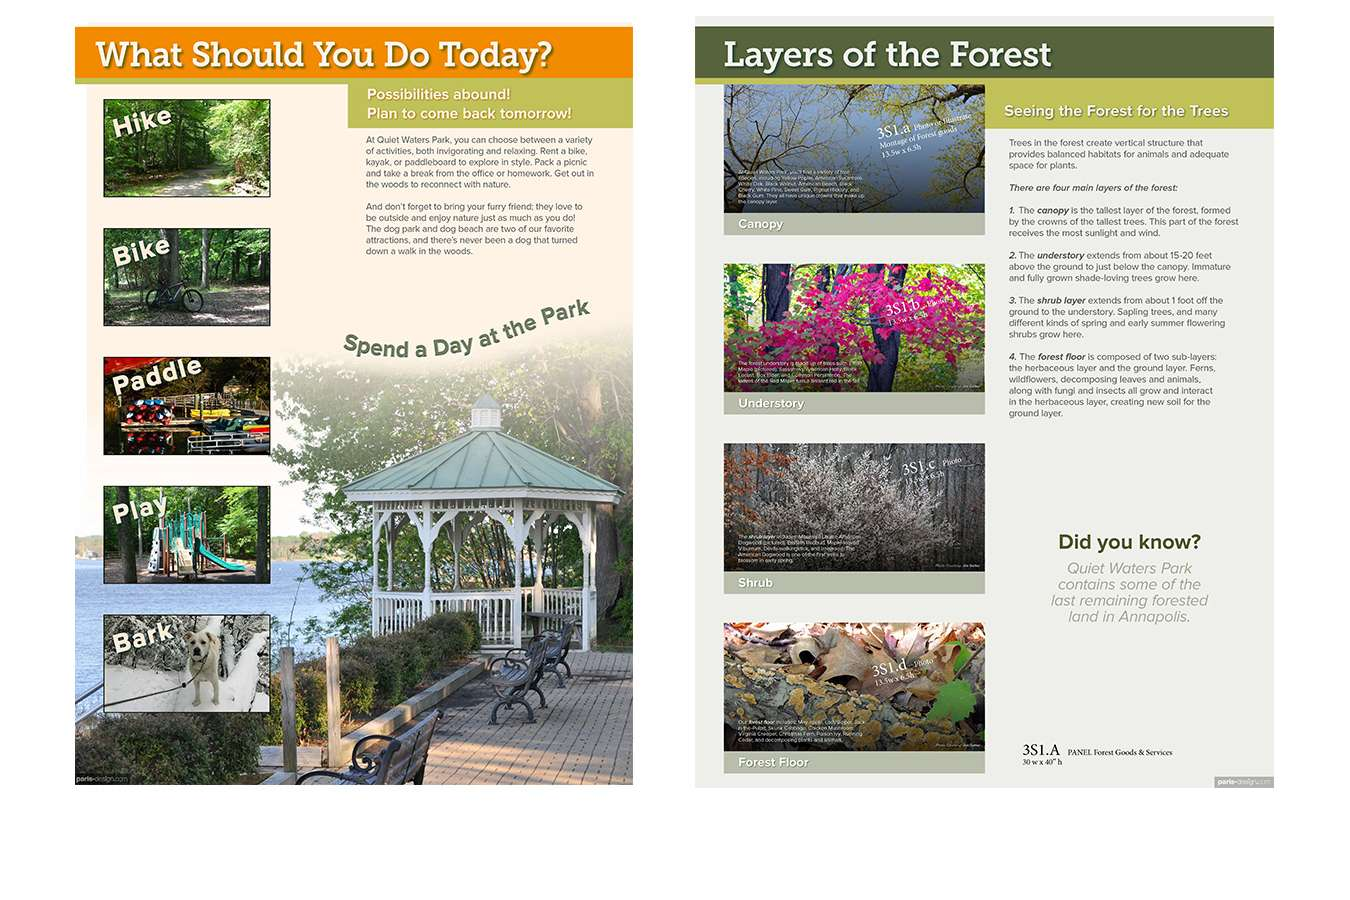 11a QWP 30x40 welc forst : Multiple images and limited text let visitors quickly get a sense of what to look for outside in the park.